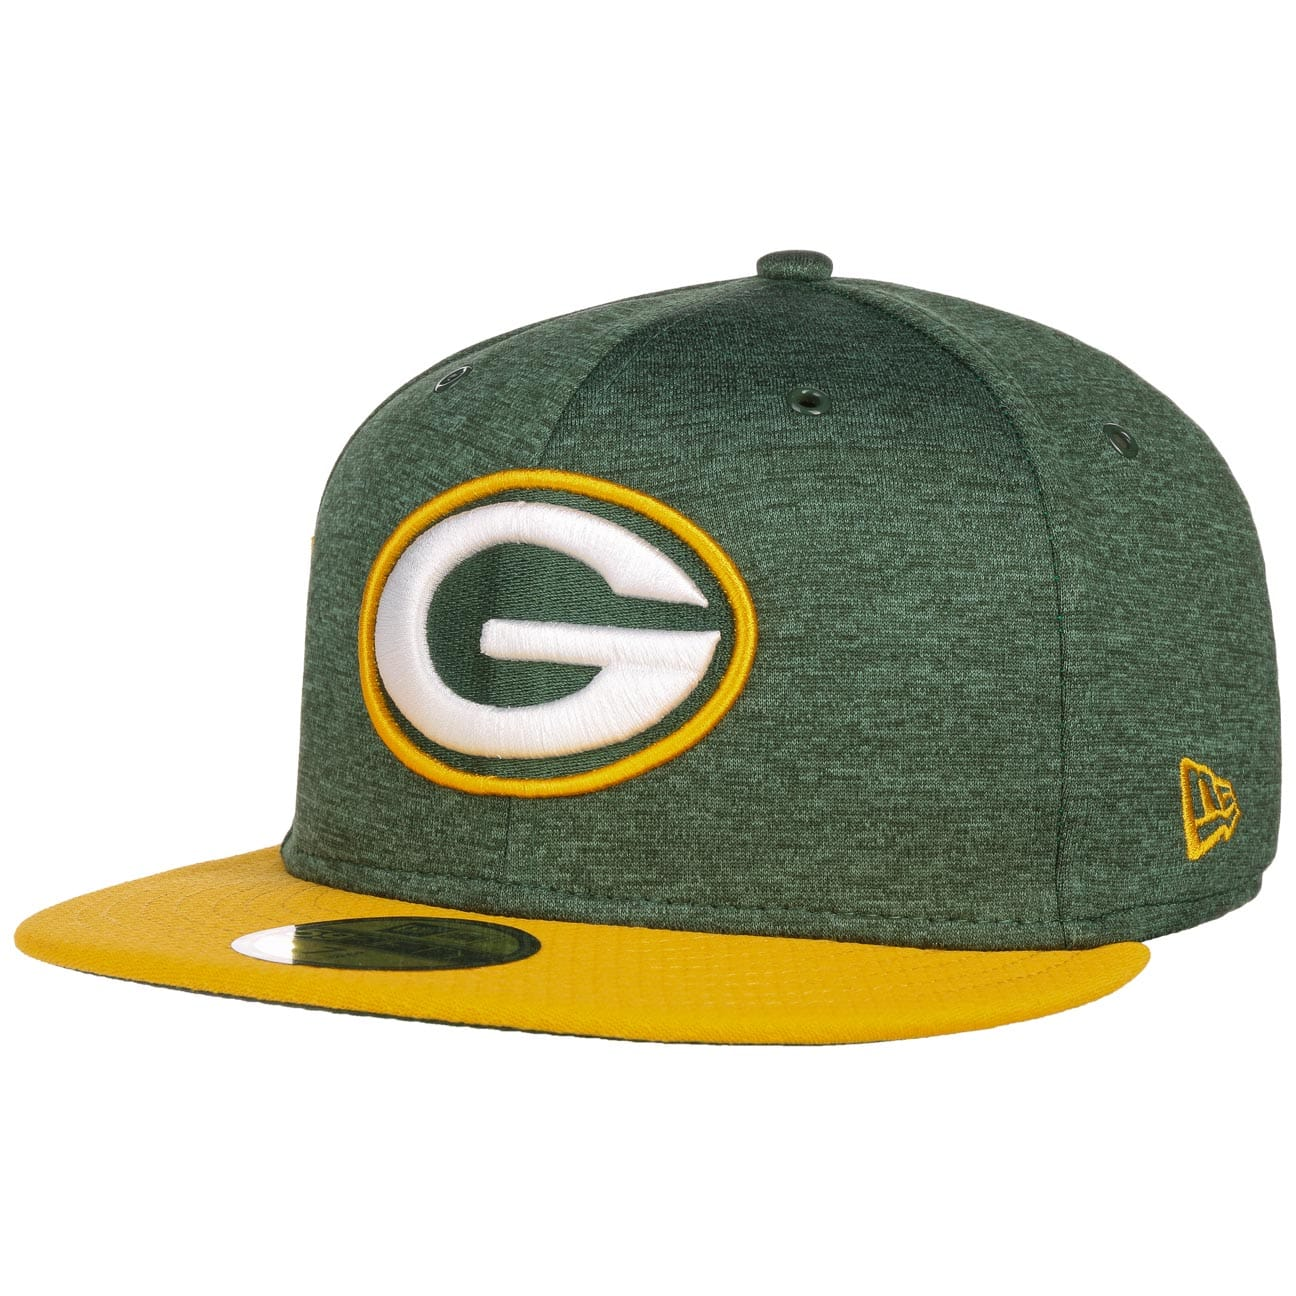 59fifty-on-field-18-packers-cap-by-new-era-flat-brim-cap